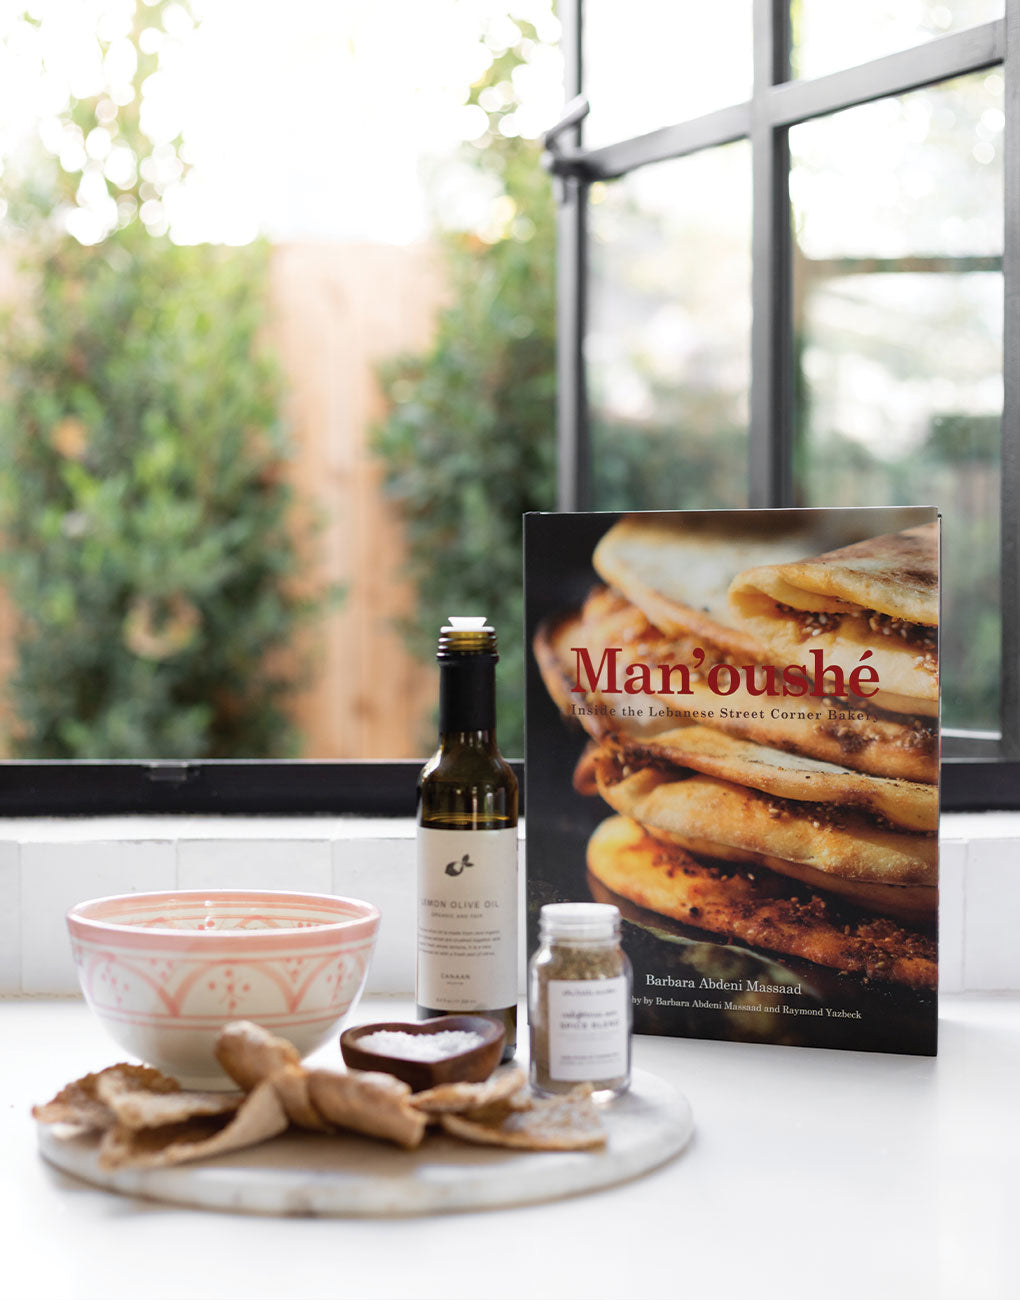 Man'oushé Cookbook | The Little Market